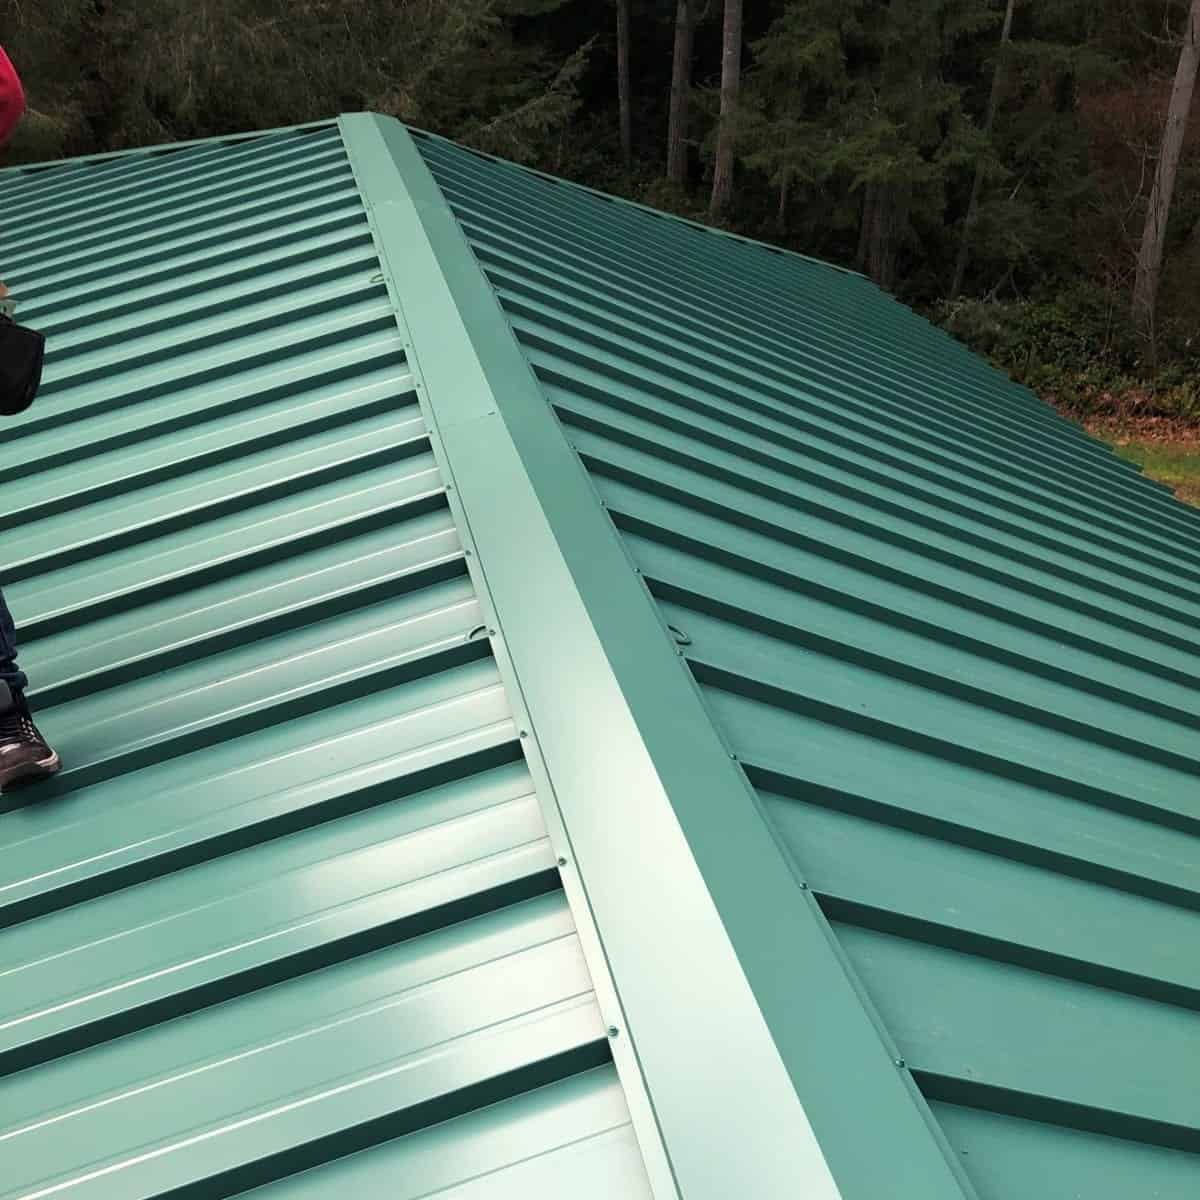 A new standing seam metal panel roof